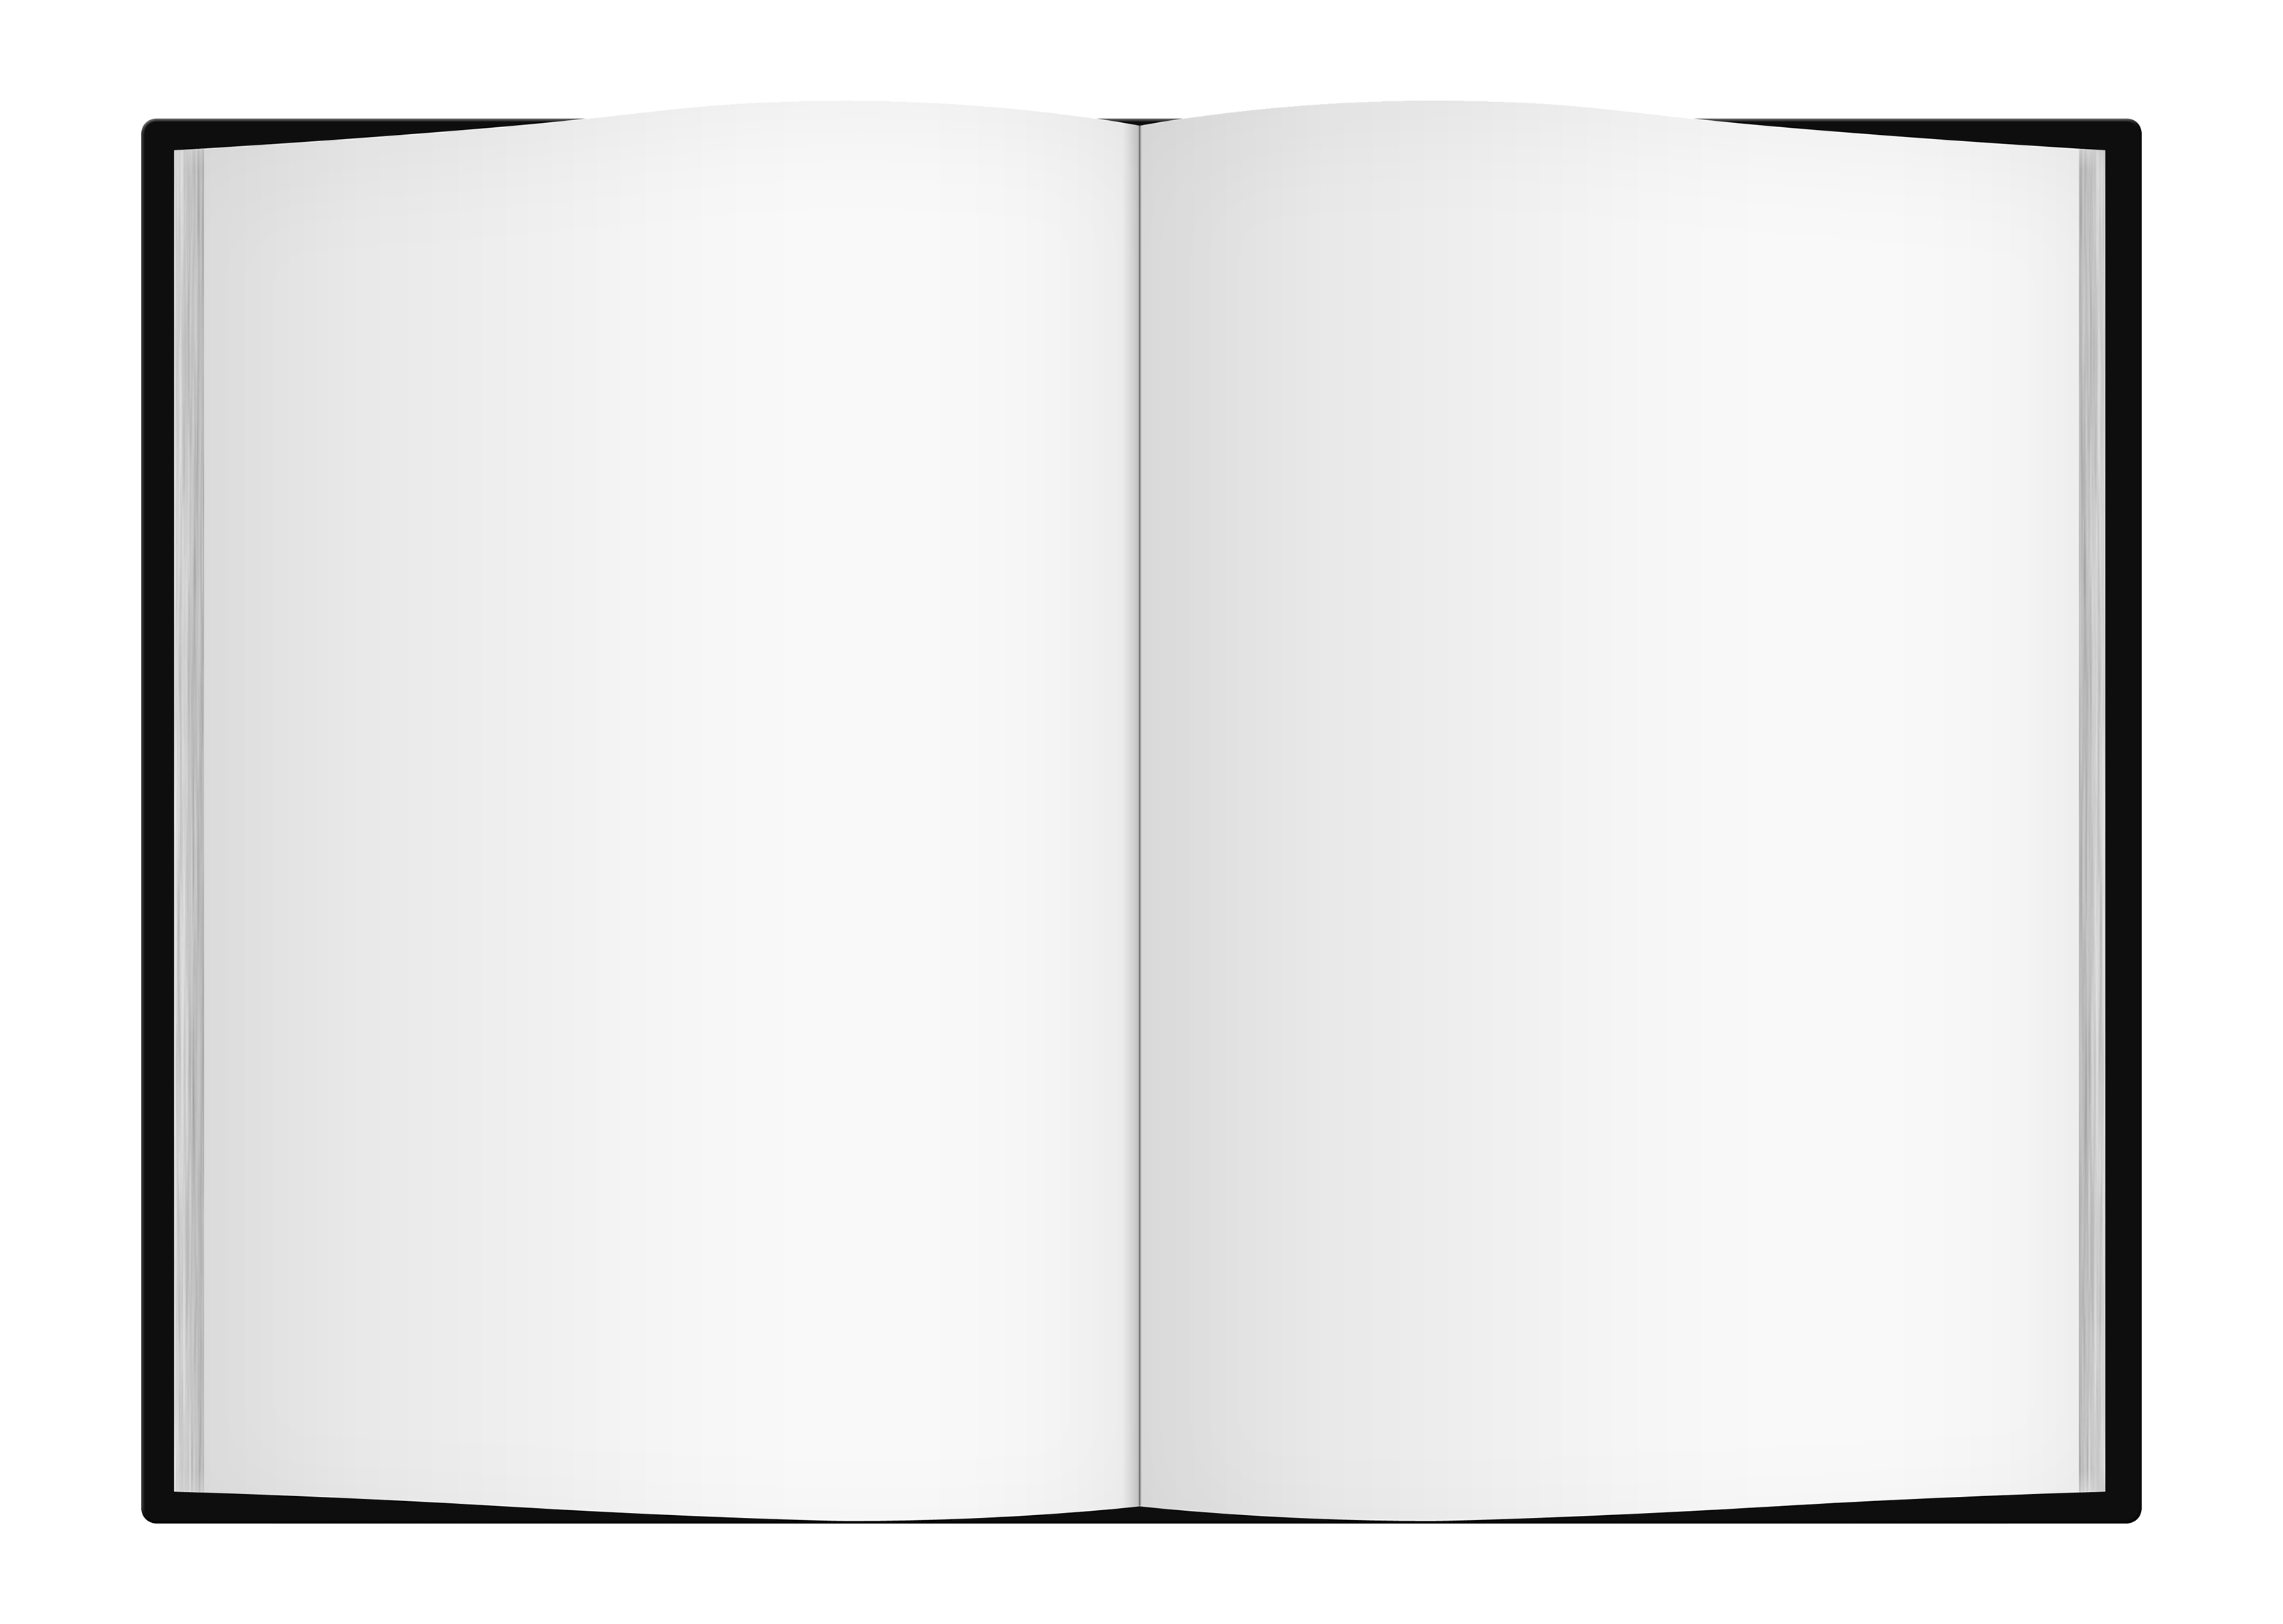 Blank Book PNG Image.